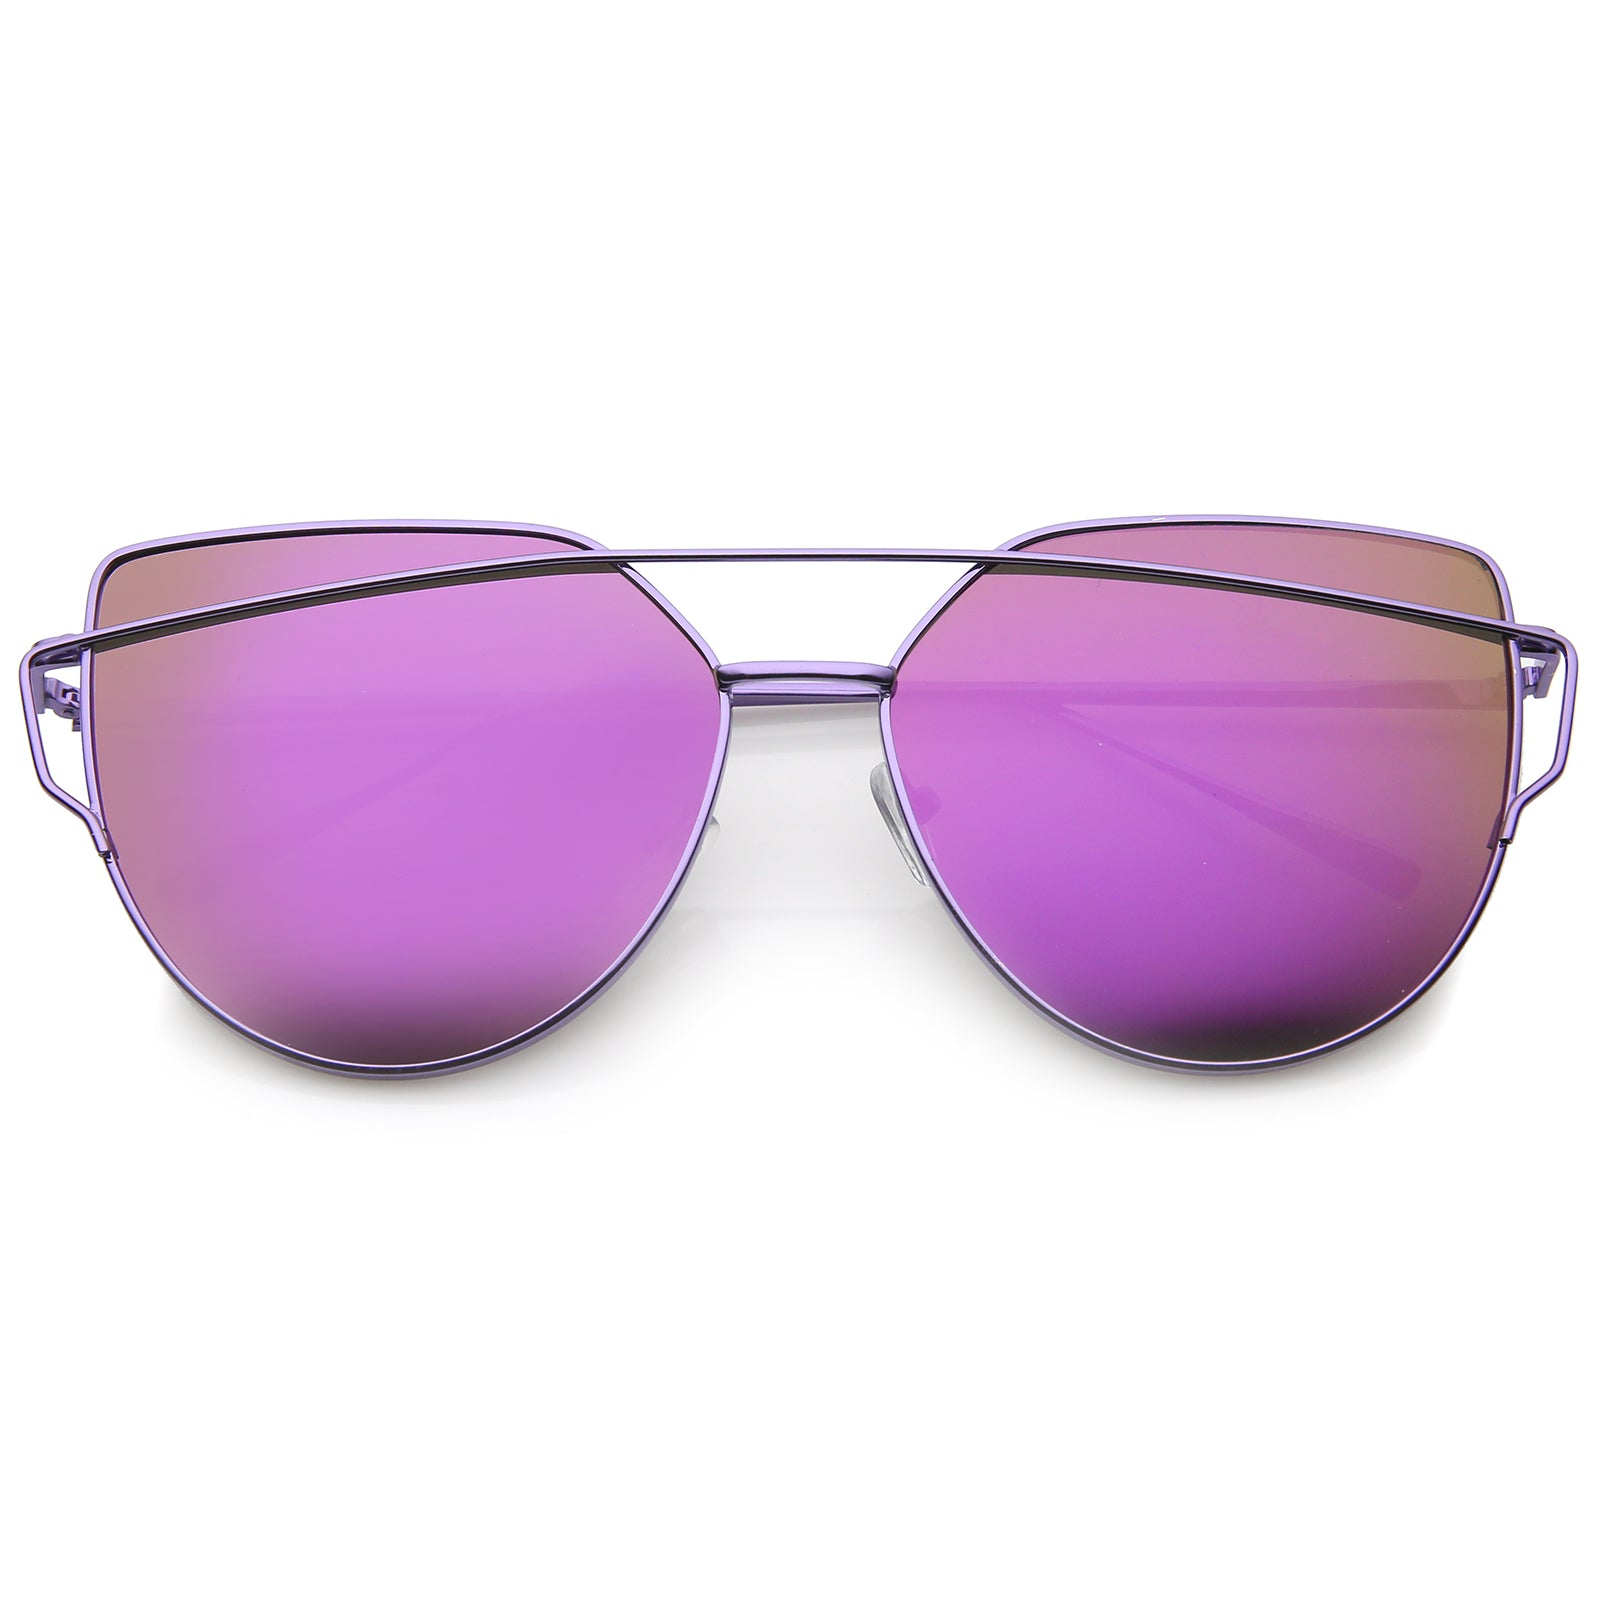 Oversize Metal Frame Thin Temple Color Mirror Flat Lens Aviator Sunglasses 62mm - sunglass.la - 13